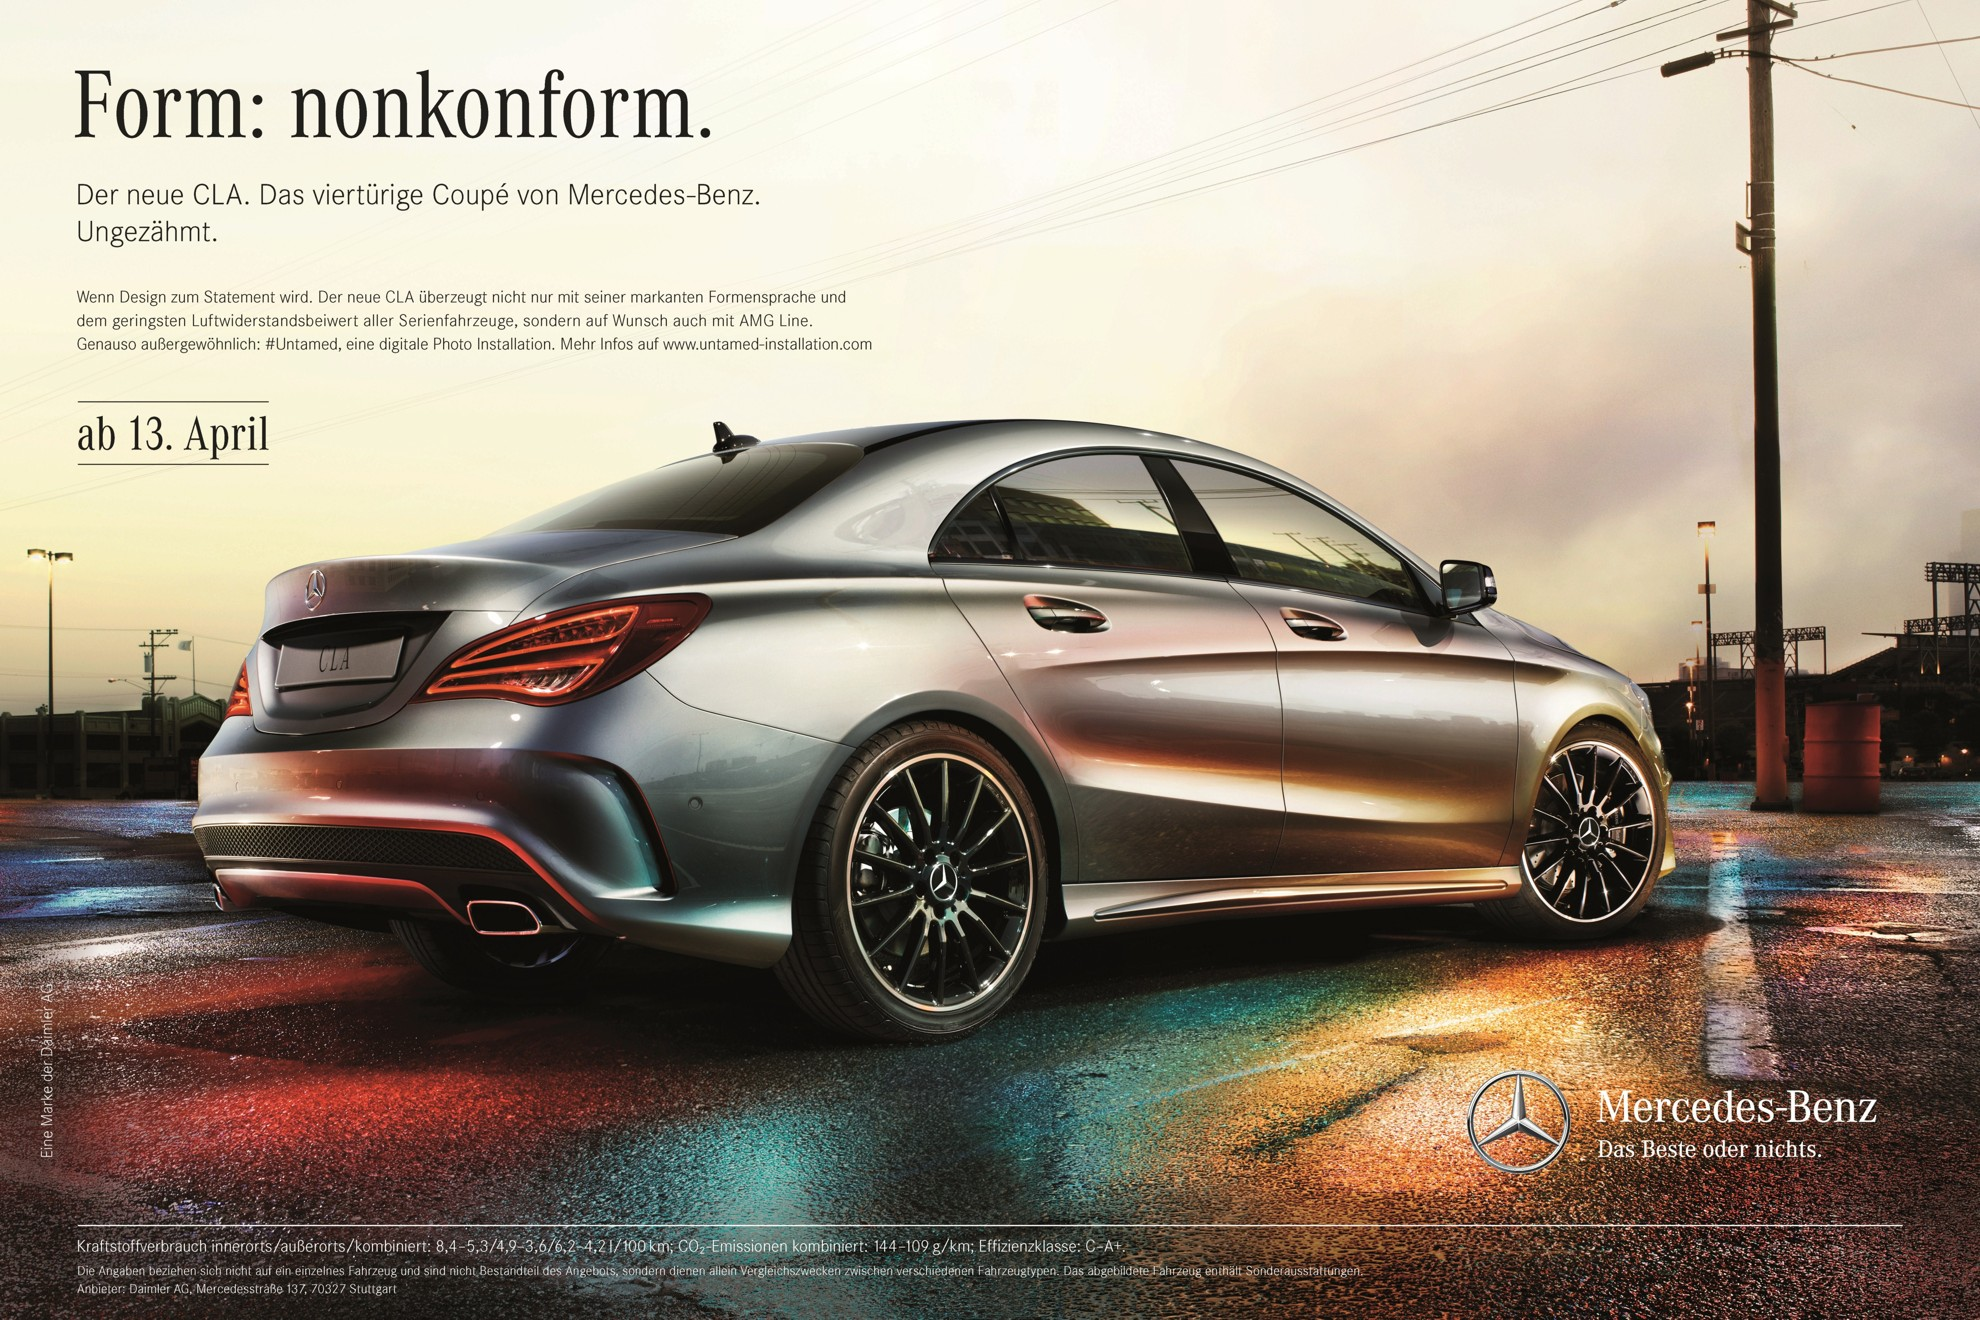 The new mercedes benz cla mercedes benz launches for Mercedes benz poster